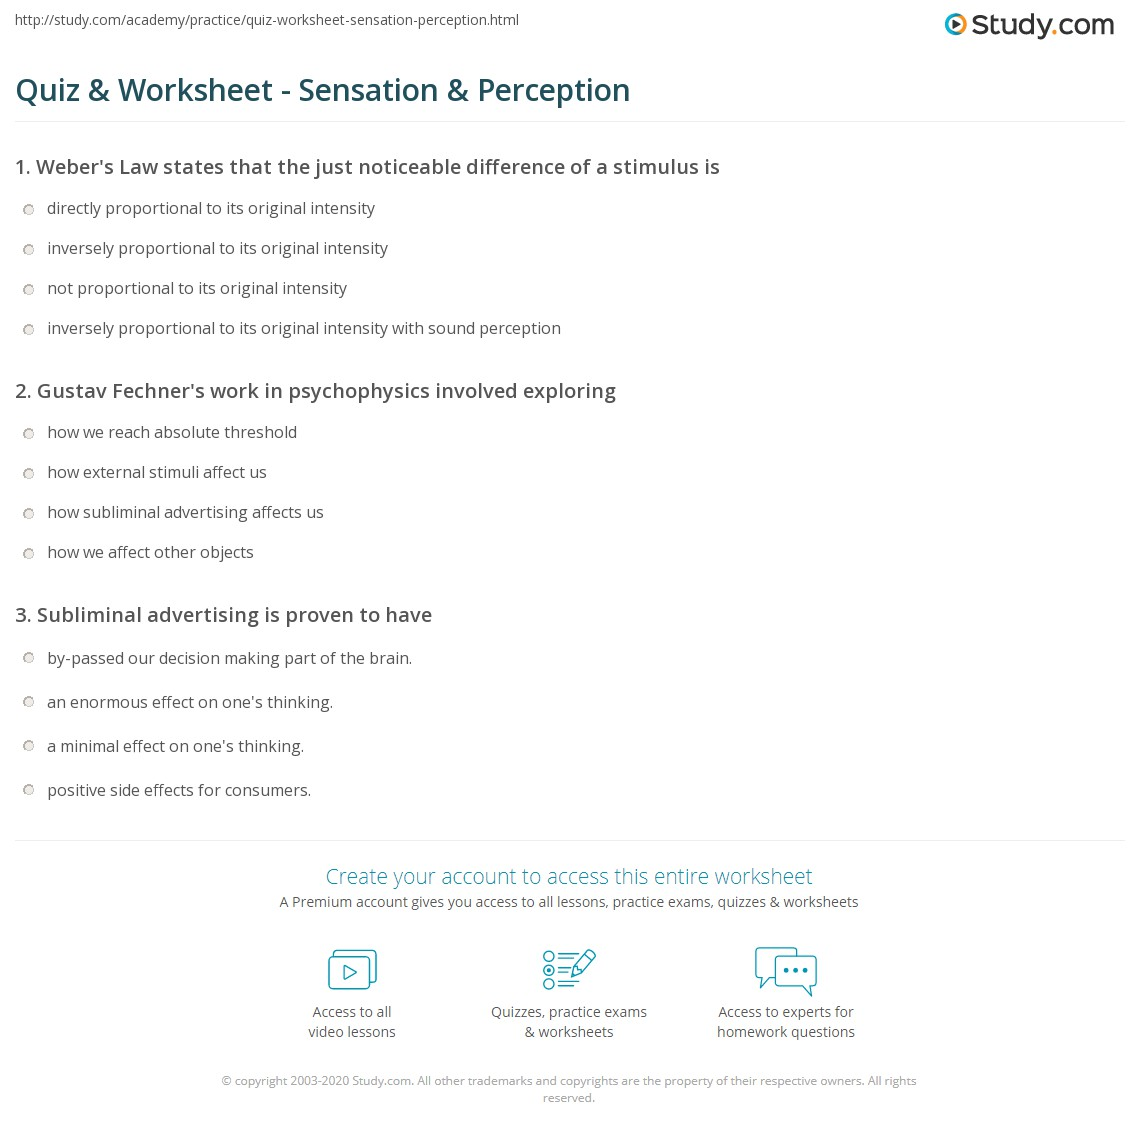 guided reading activity 8-1 sensation answer key